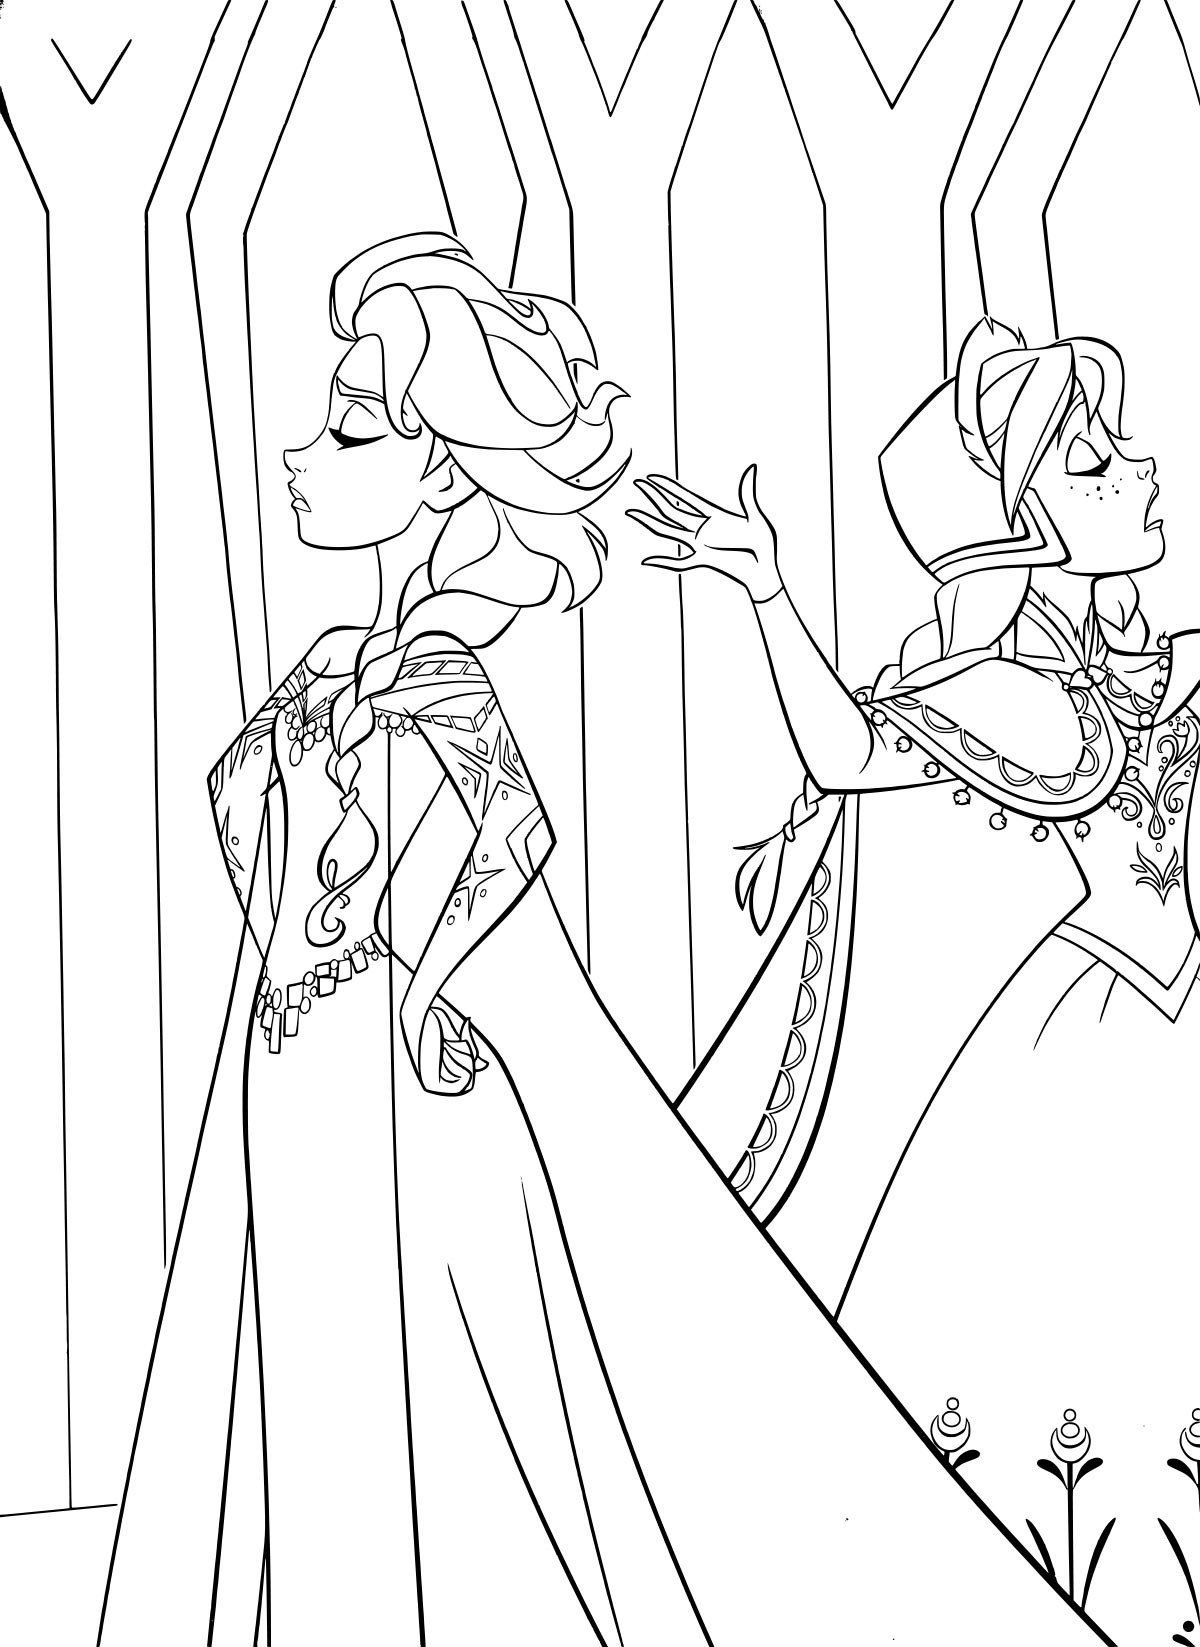 Frozen Anna Coloring Page Frozen Elsa And Anna Coloring Pages Getcoloringpages Frozen Coloring Pages Elsa Coloring Pages Frozen Coloring